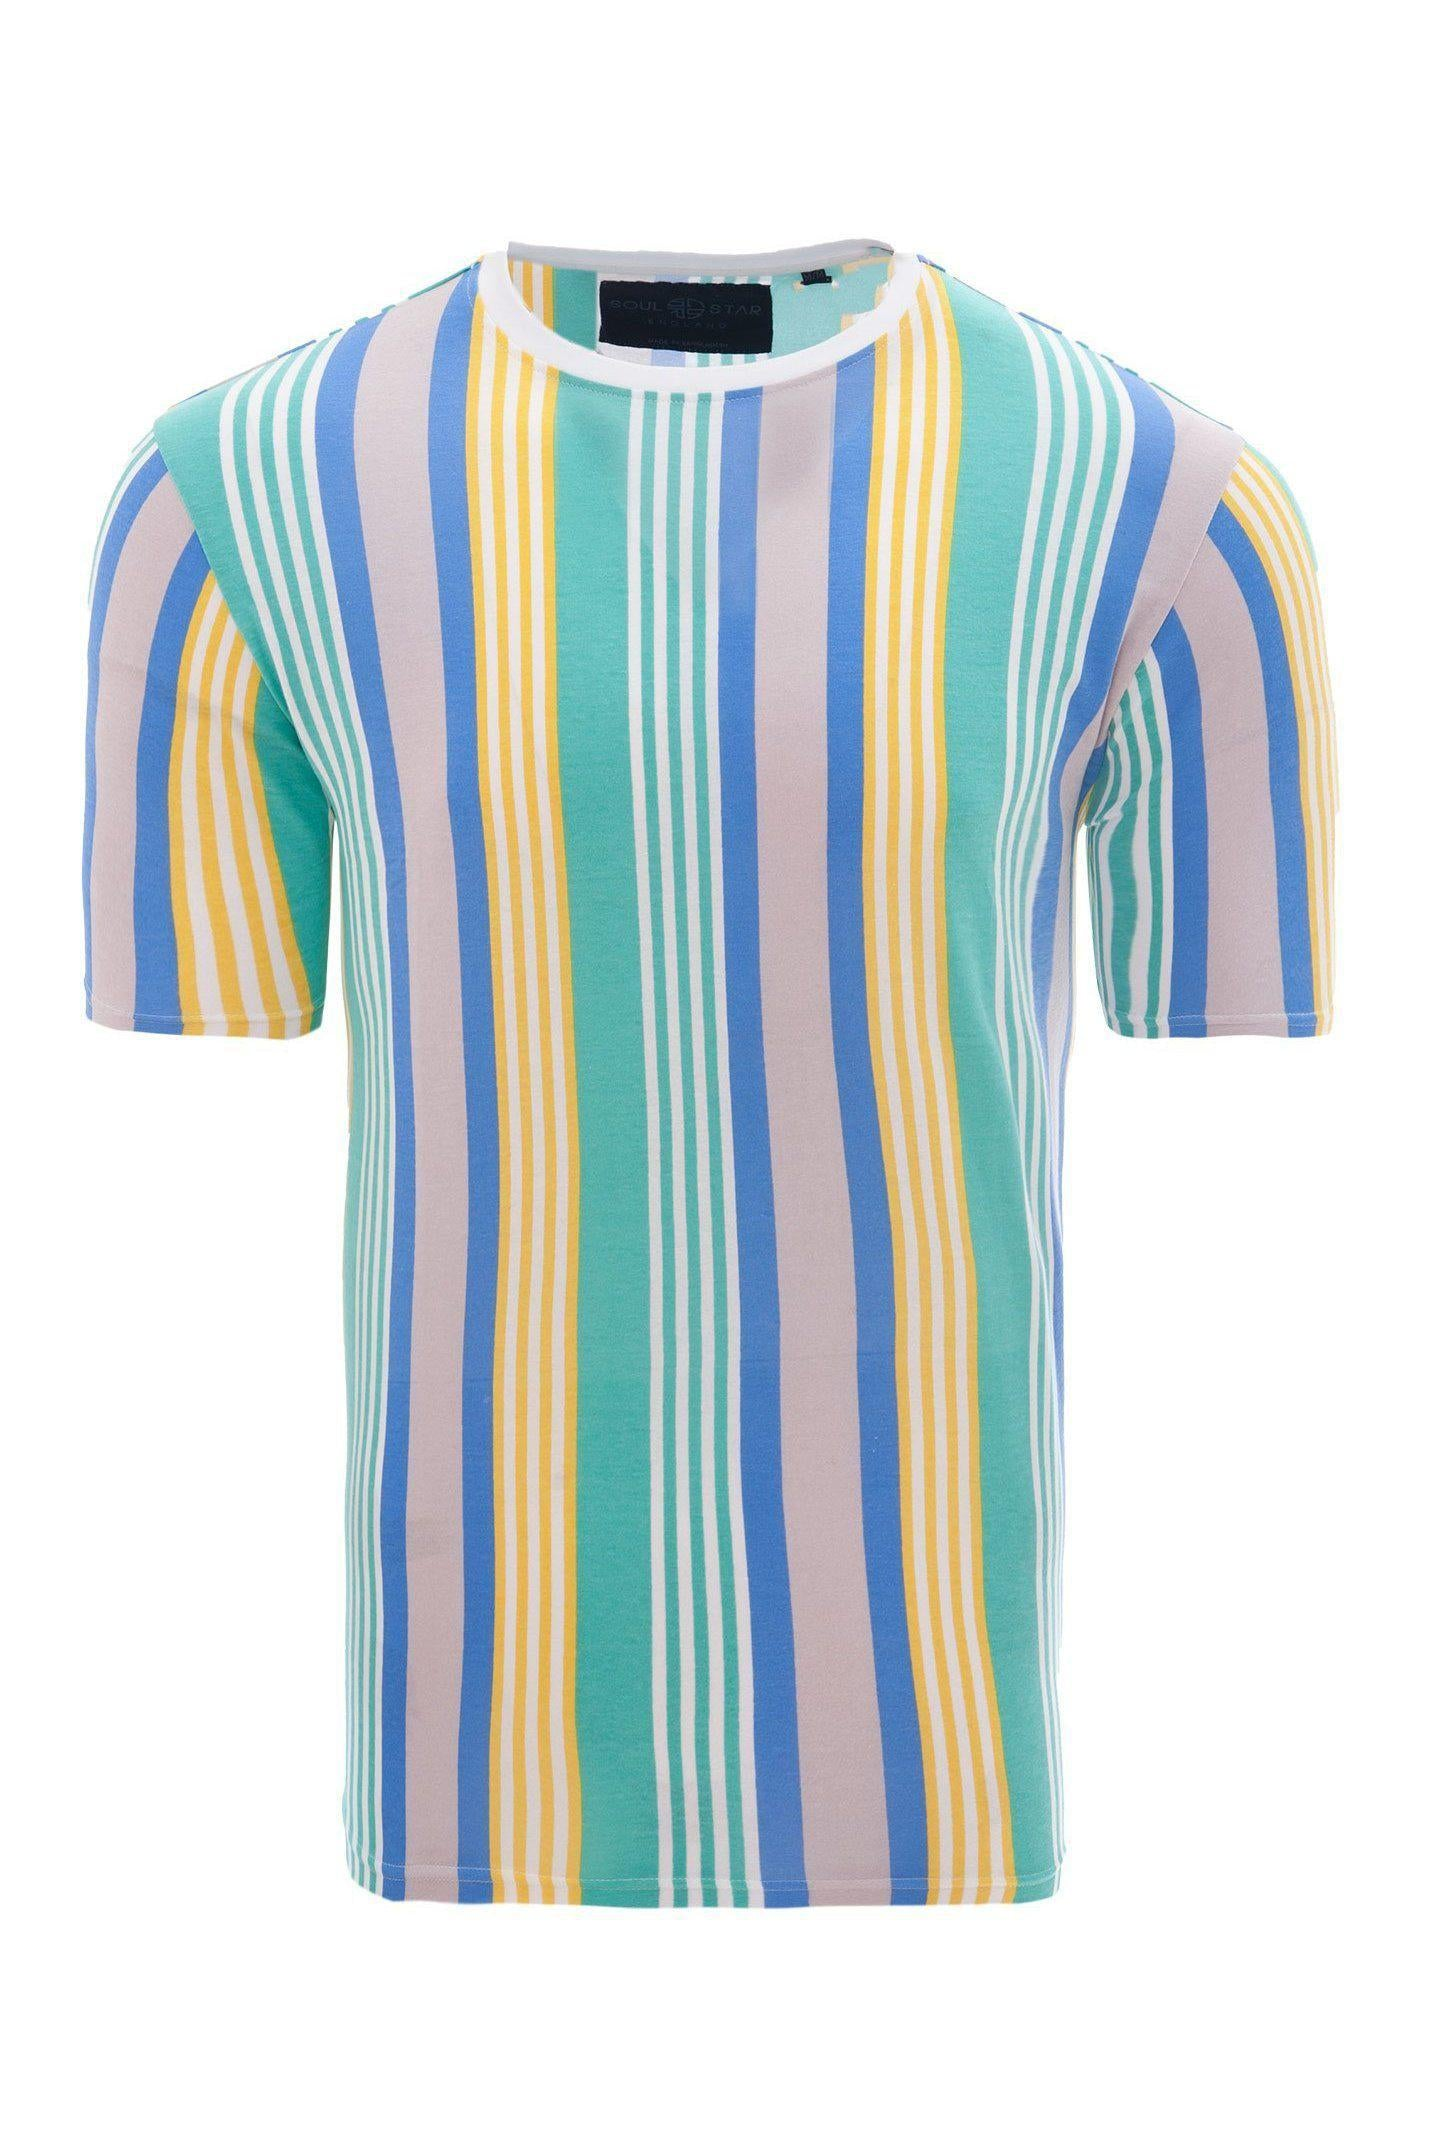 T-Shirts - Stripe T-Shirt Pastel Mint